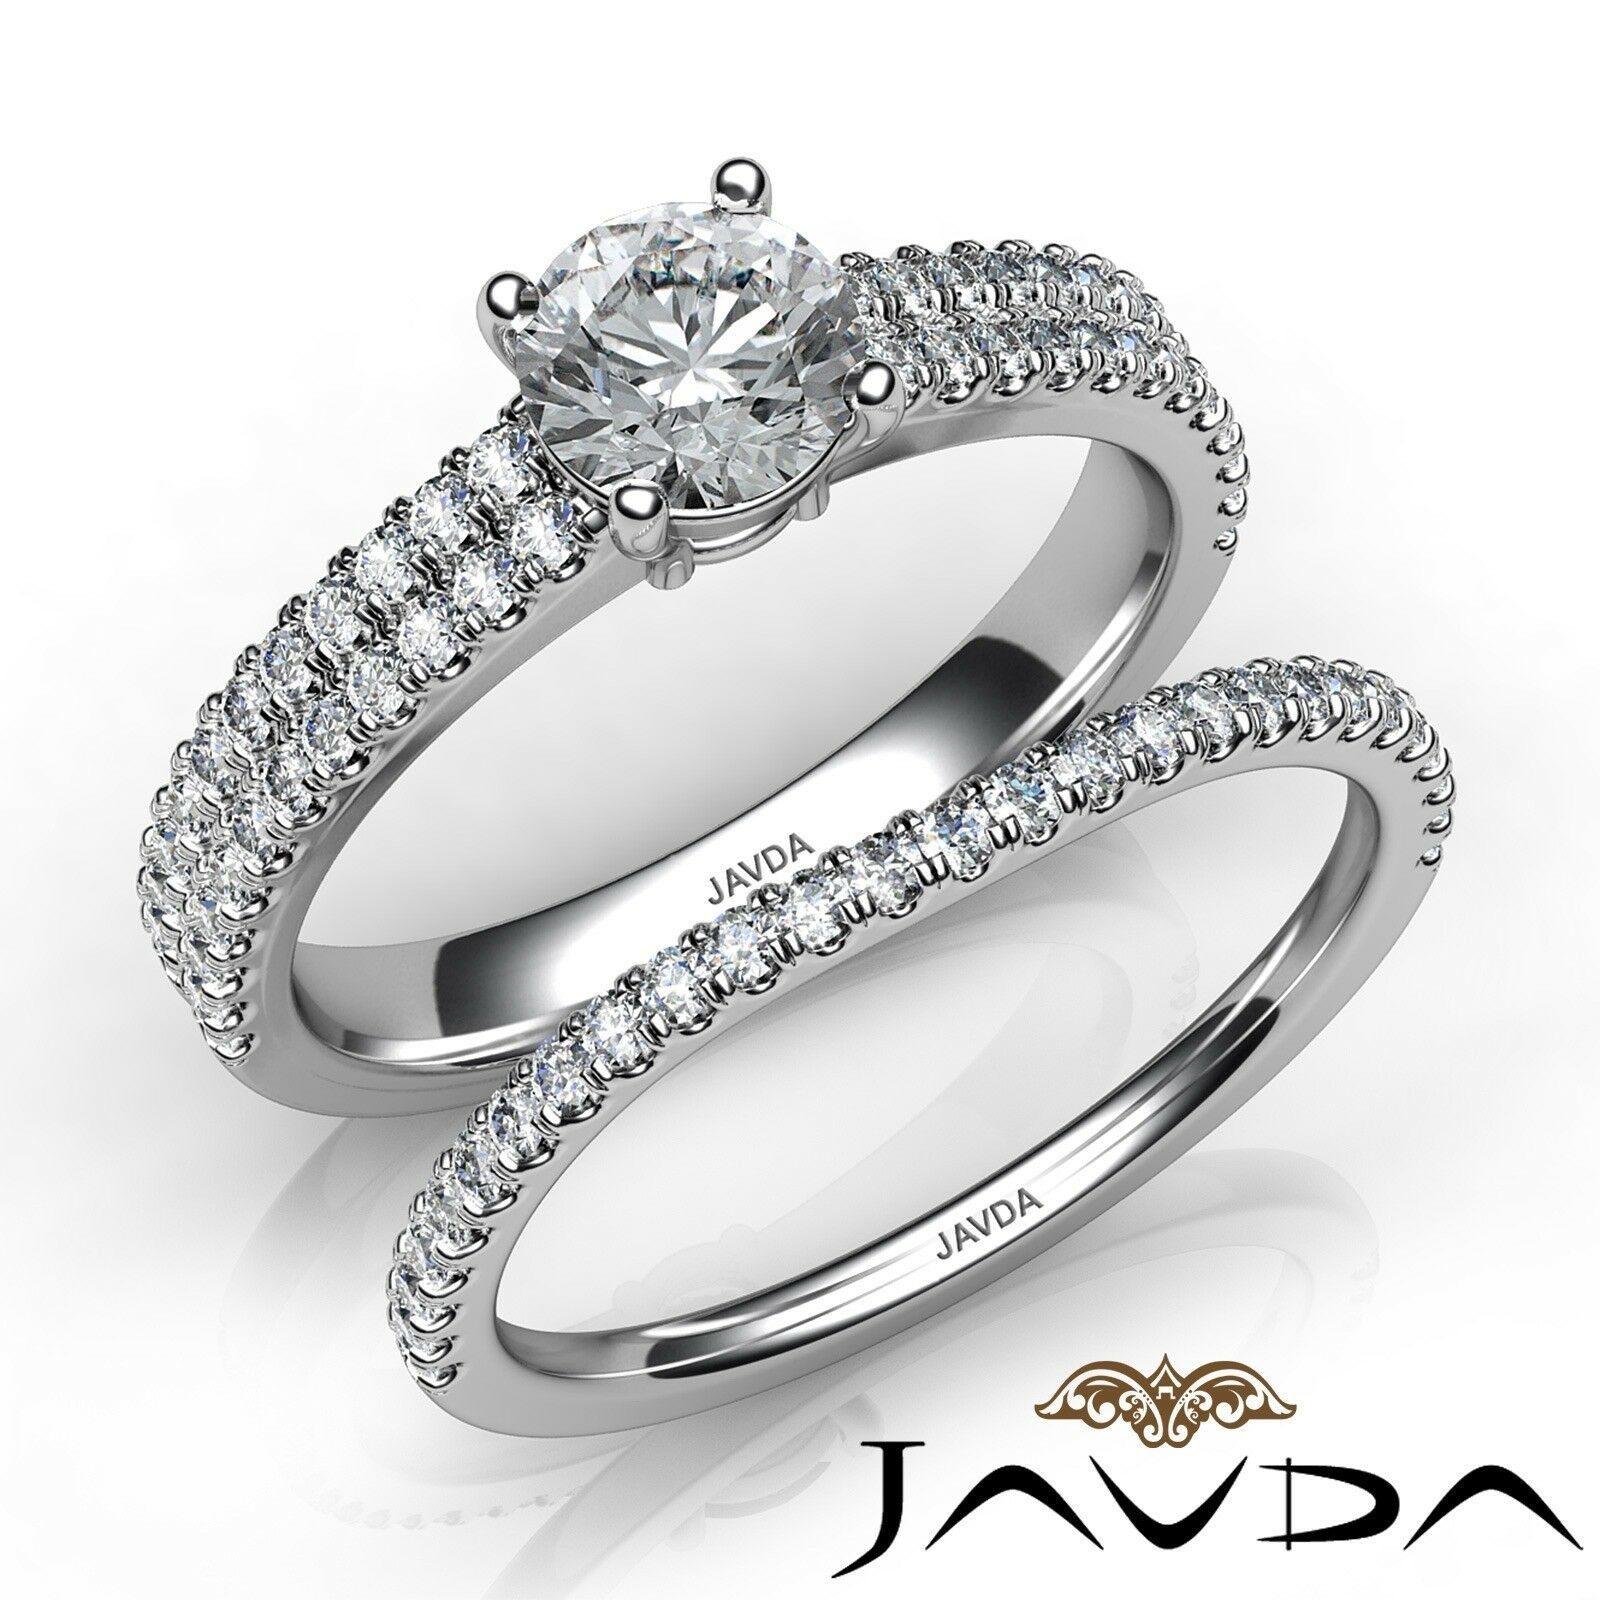 1.2ctw Scalloped Pave Bridal Round Diamond Engagement Ring GIA E-VVS2 White Gold